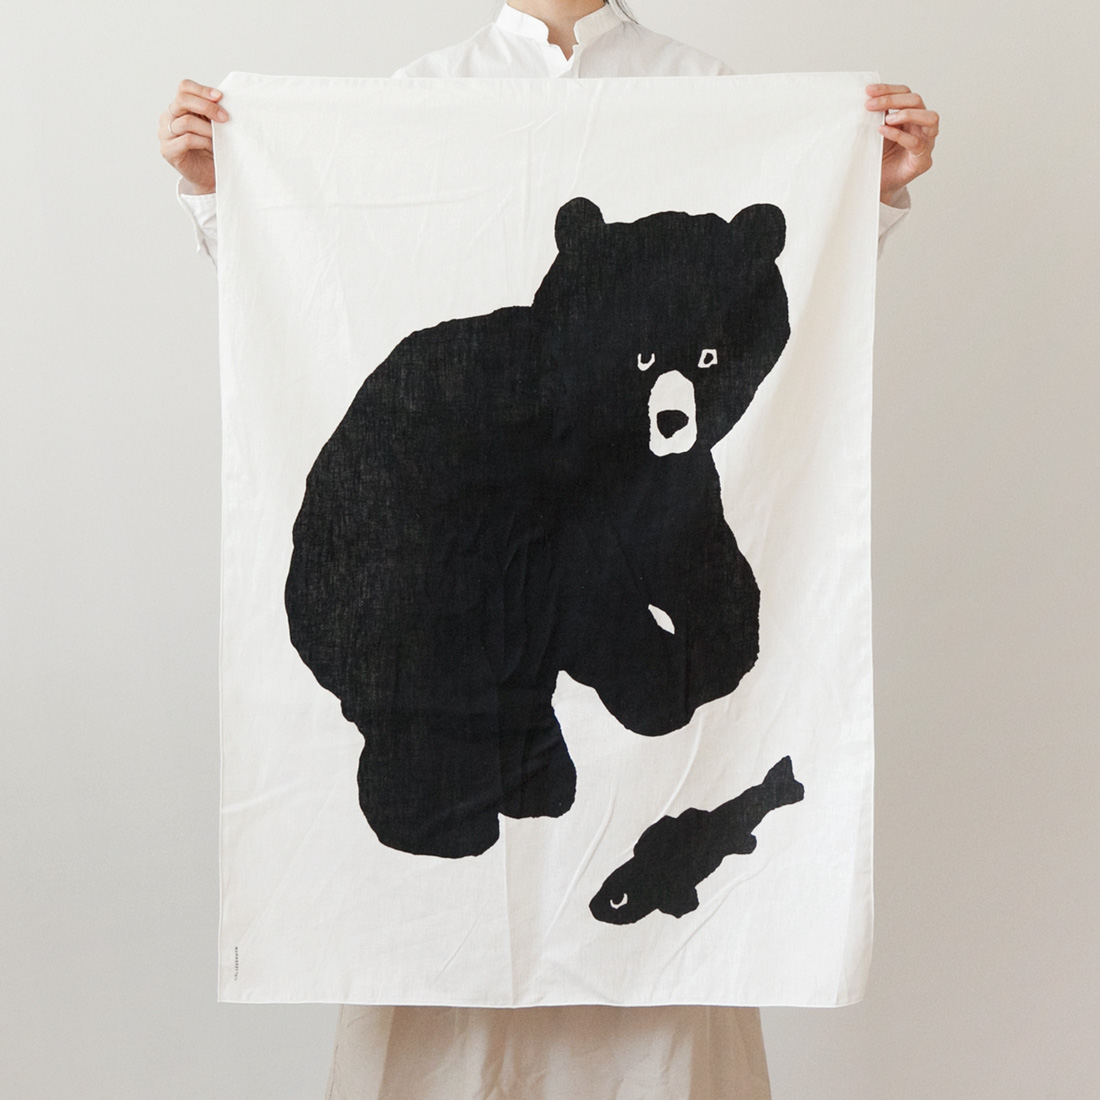 BLACK BEAR FABRIC POSTER